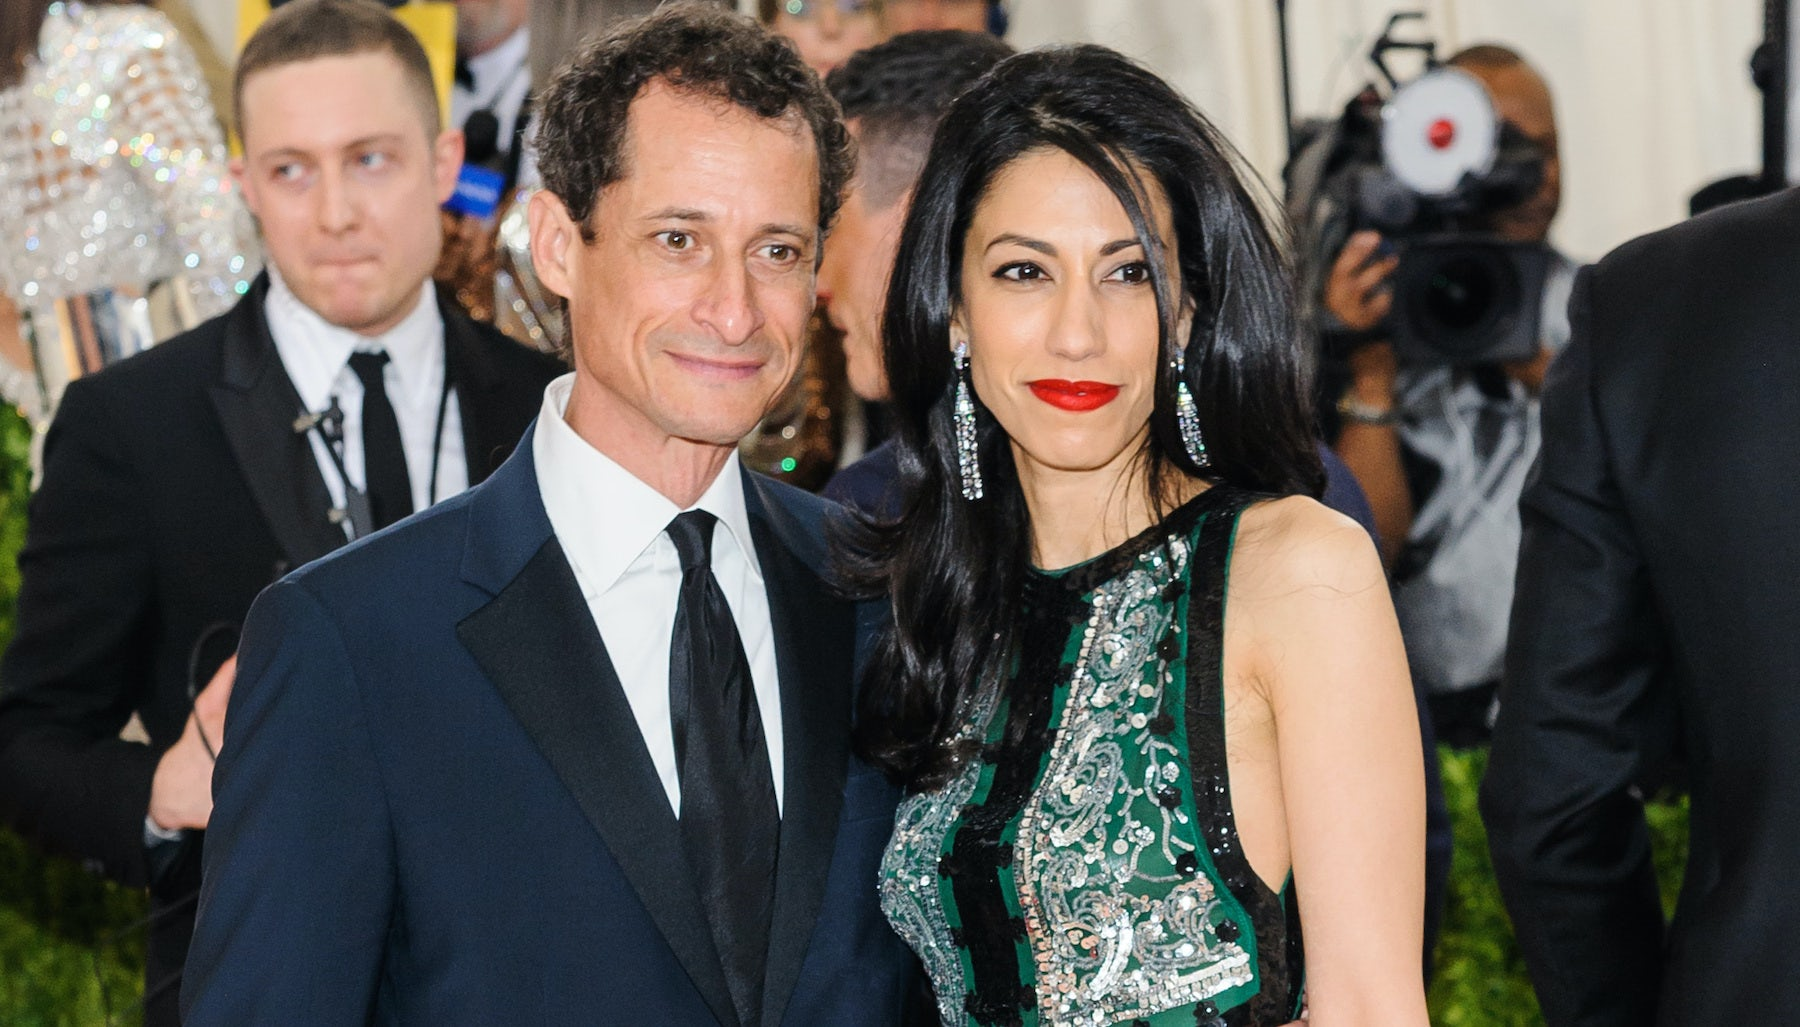 Anthony Weiner and Huma Abedin at the MET Gala 2016 | Source: Shutterstock